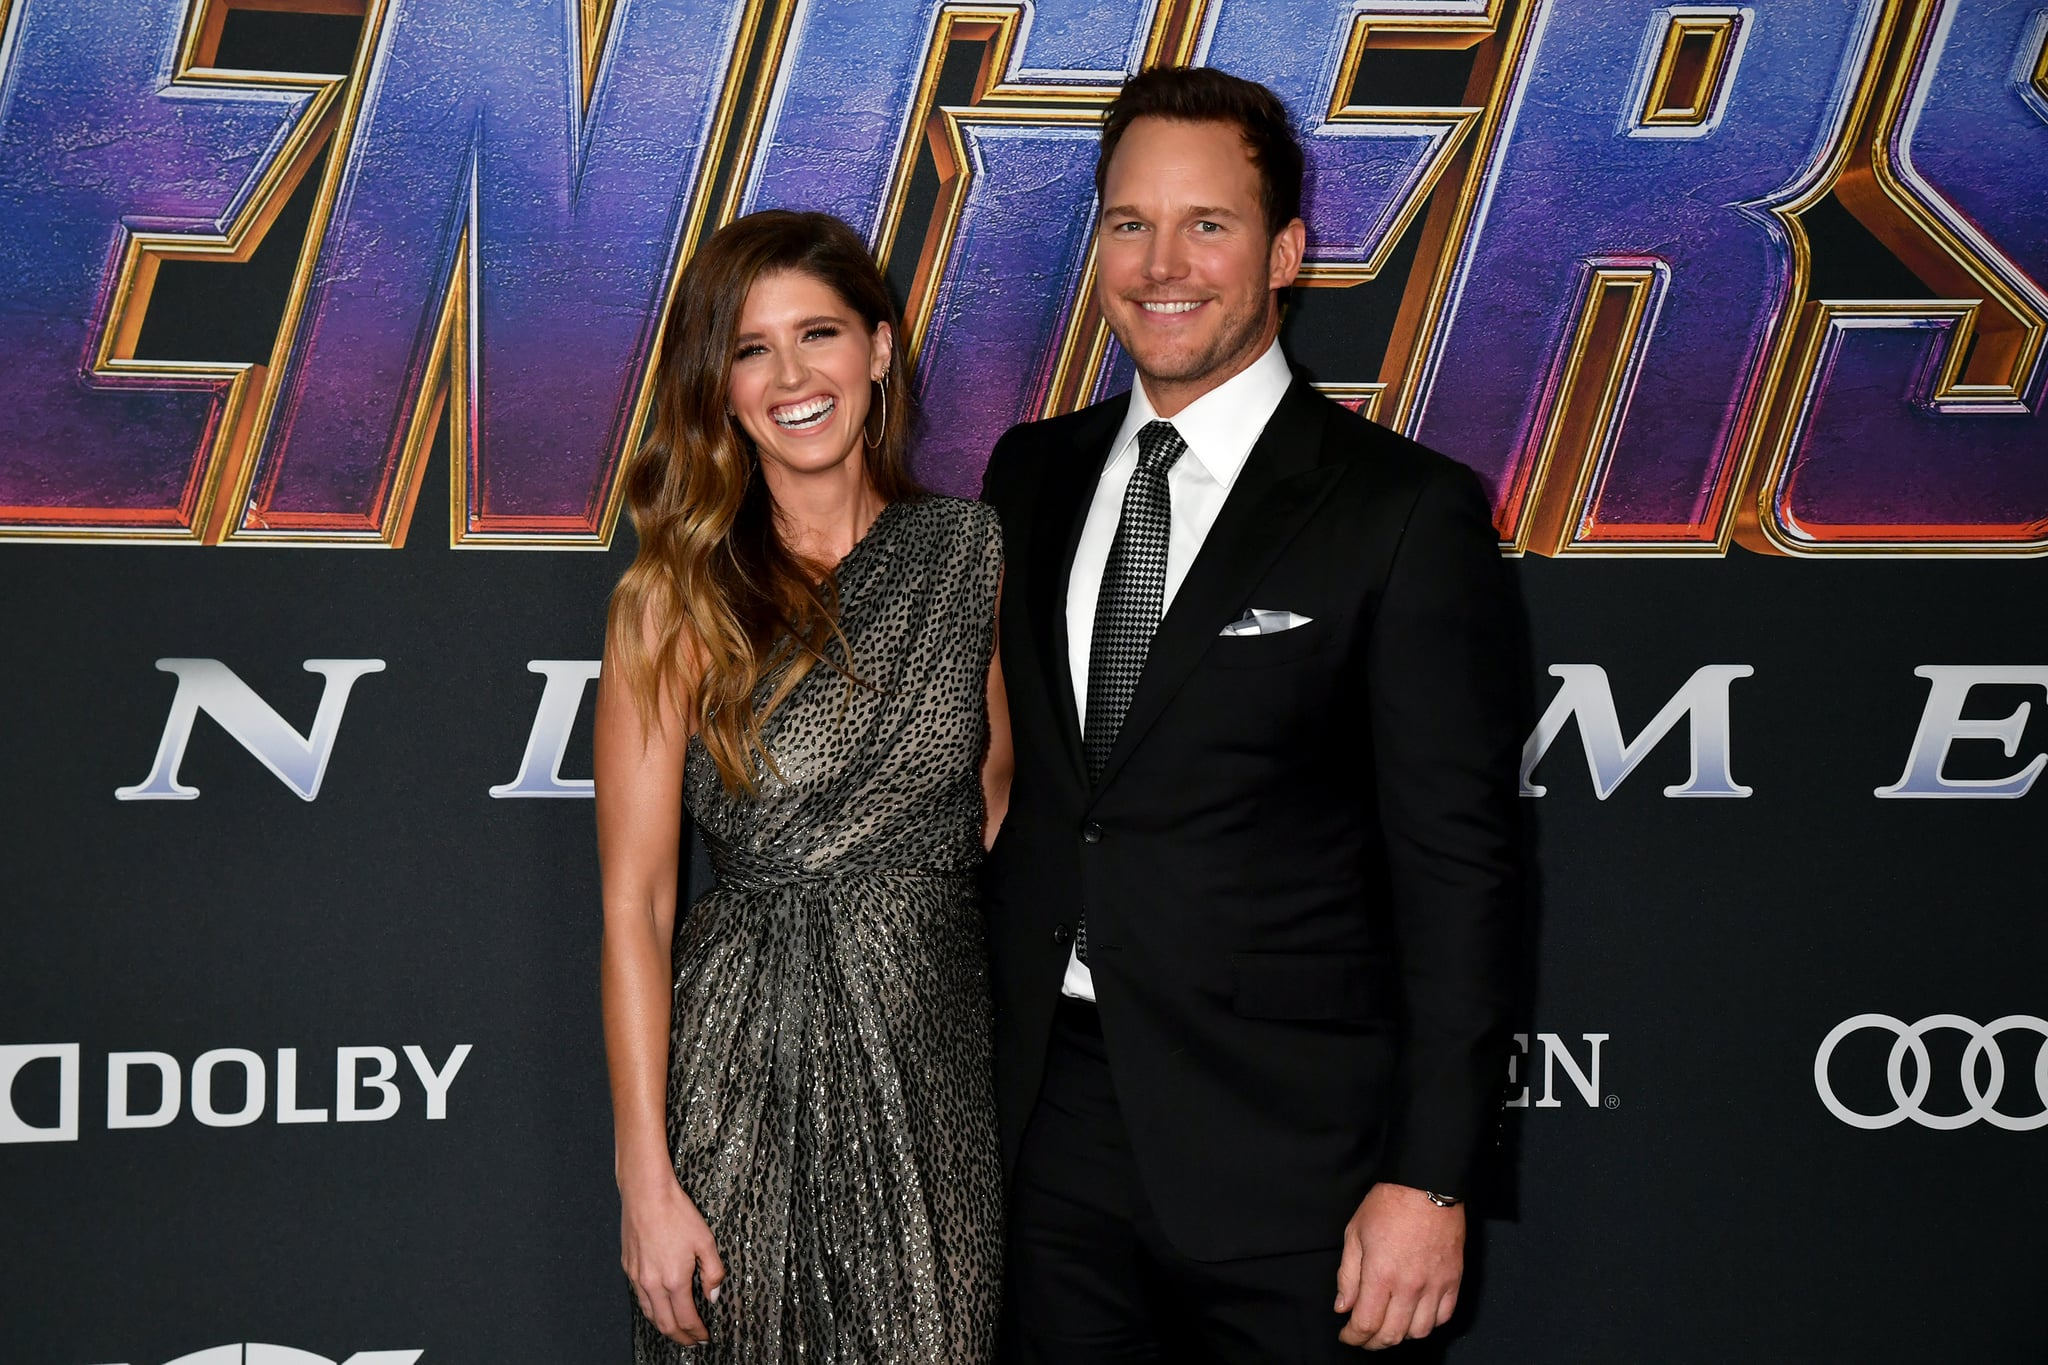 LOS ANGELES, CALIFORNIA - APRIL 22:  Katherine Schwarzenegger and Chris Pratt attends the World Premiere of Walt Disney Studios Motion Pictures